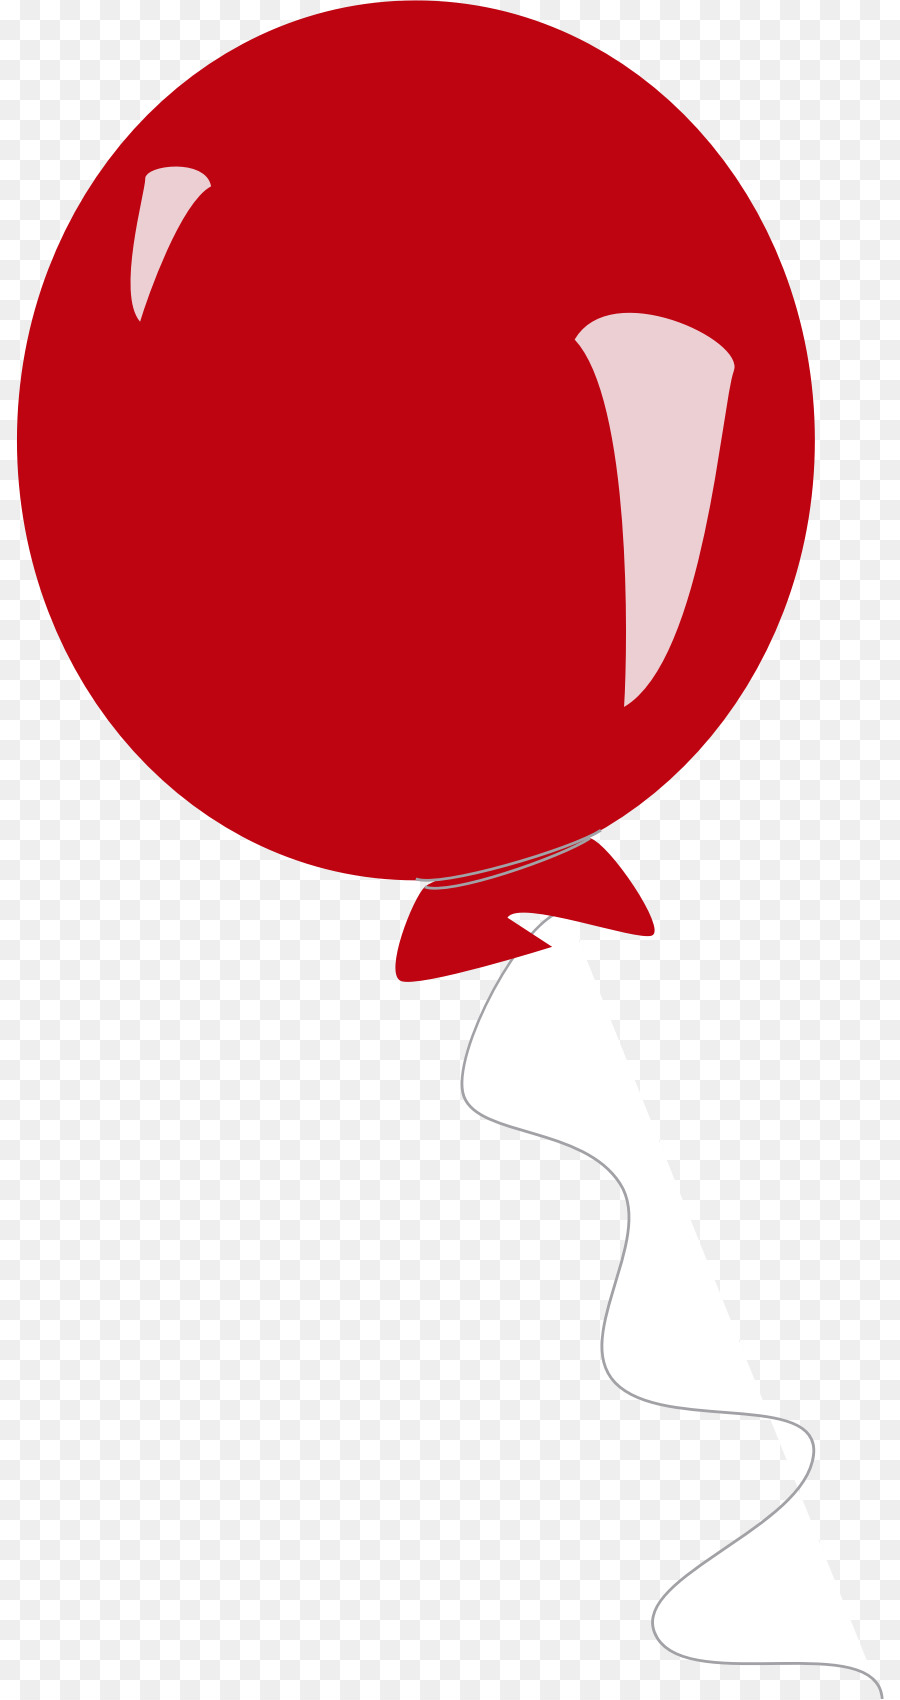 900x1700 Balloon, Drawing, Red, Transparent Png Image Clipart Free Download